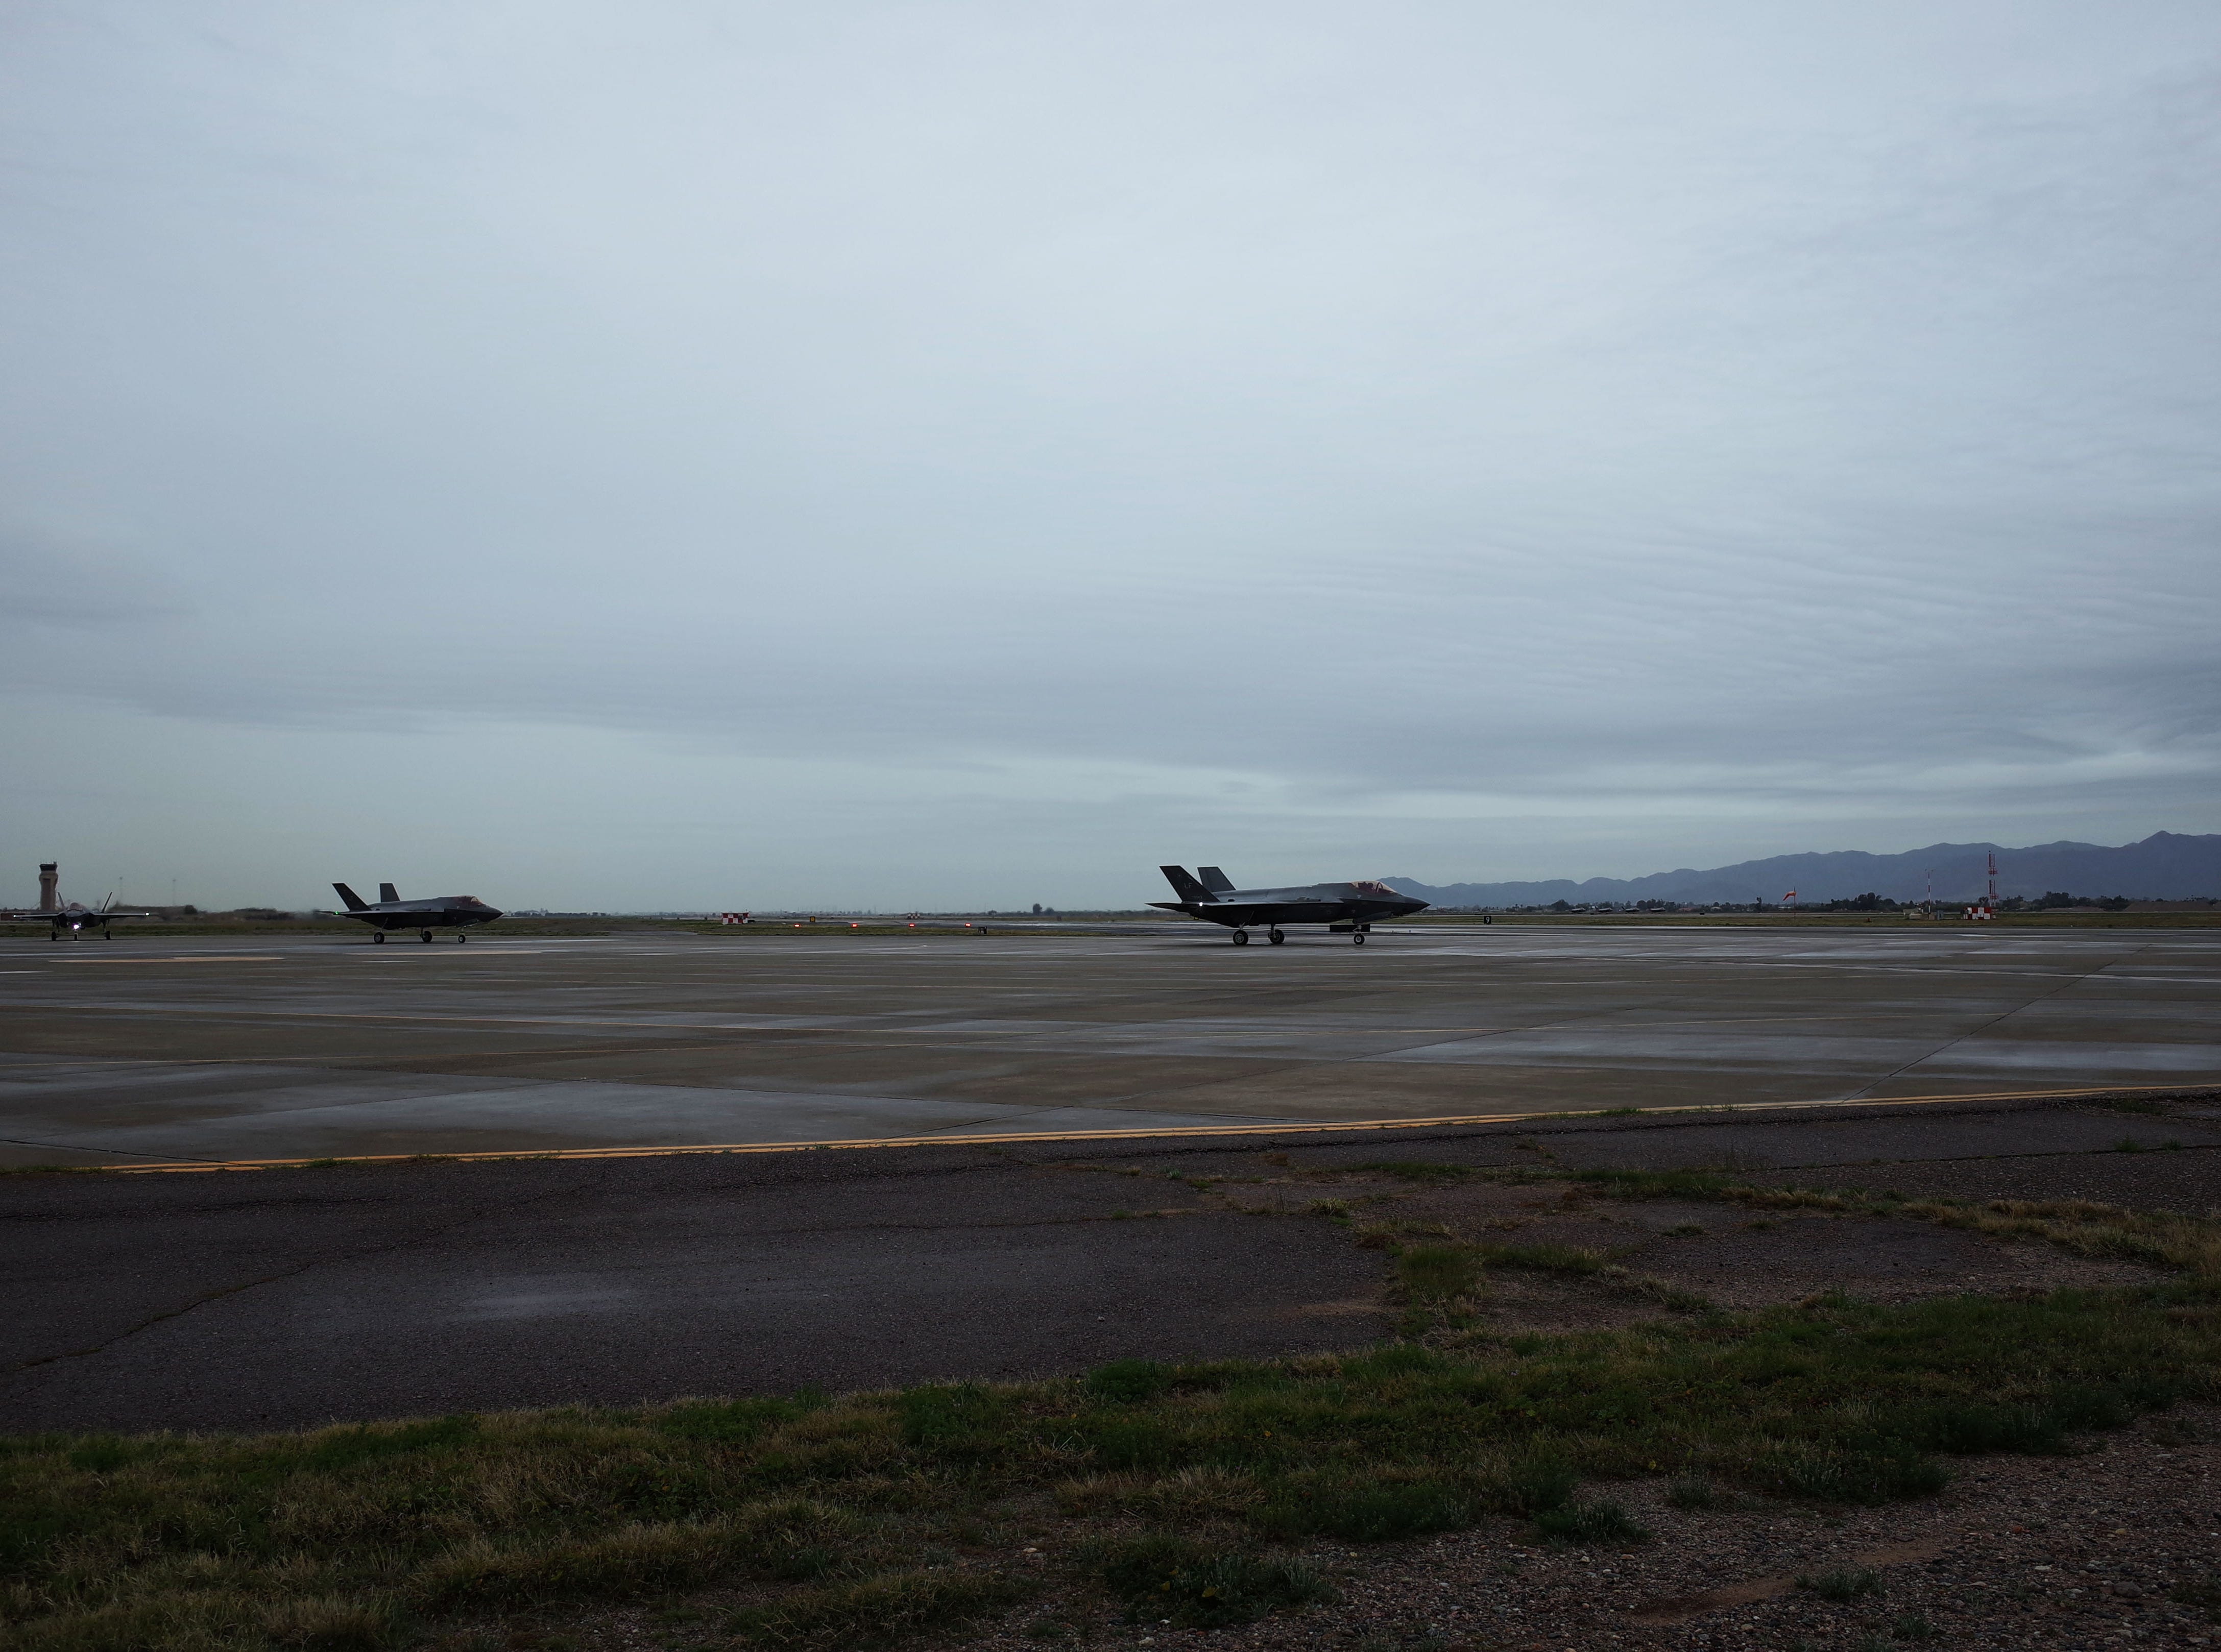 F-35s taxi for takeoff at Luke Air Force Base in Glendale, the White Tank Mountains in the backdrop, in February 2019.  The model of the F-35A made for the the Air Force can support an internal cannon, according to Lockheed Martin.